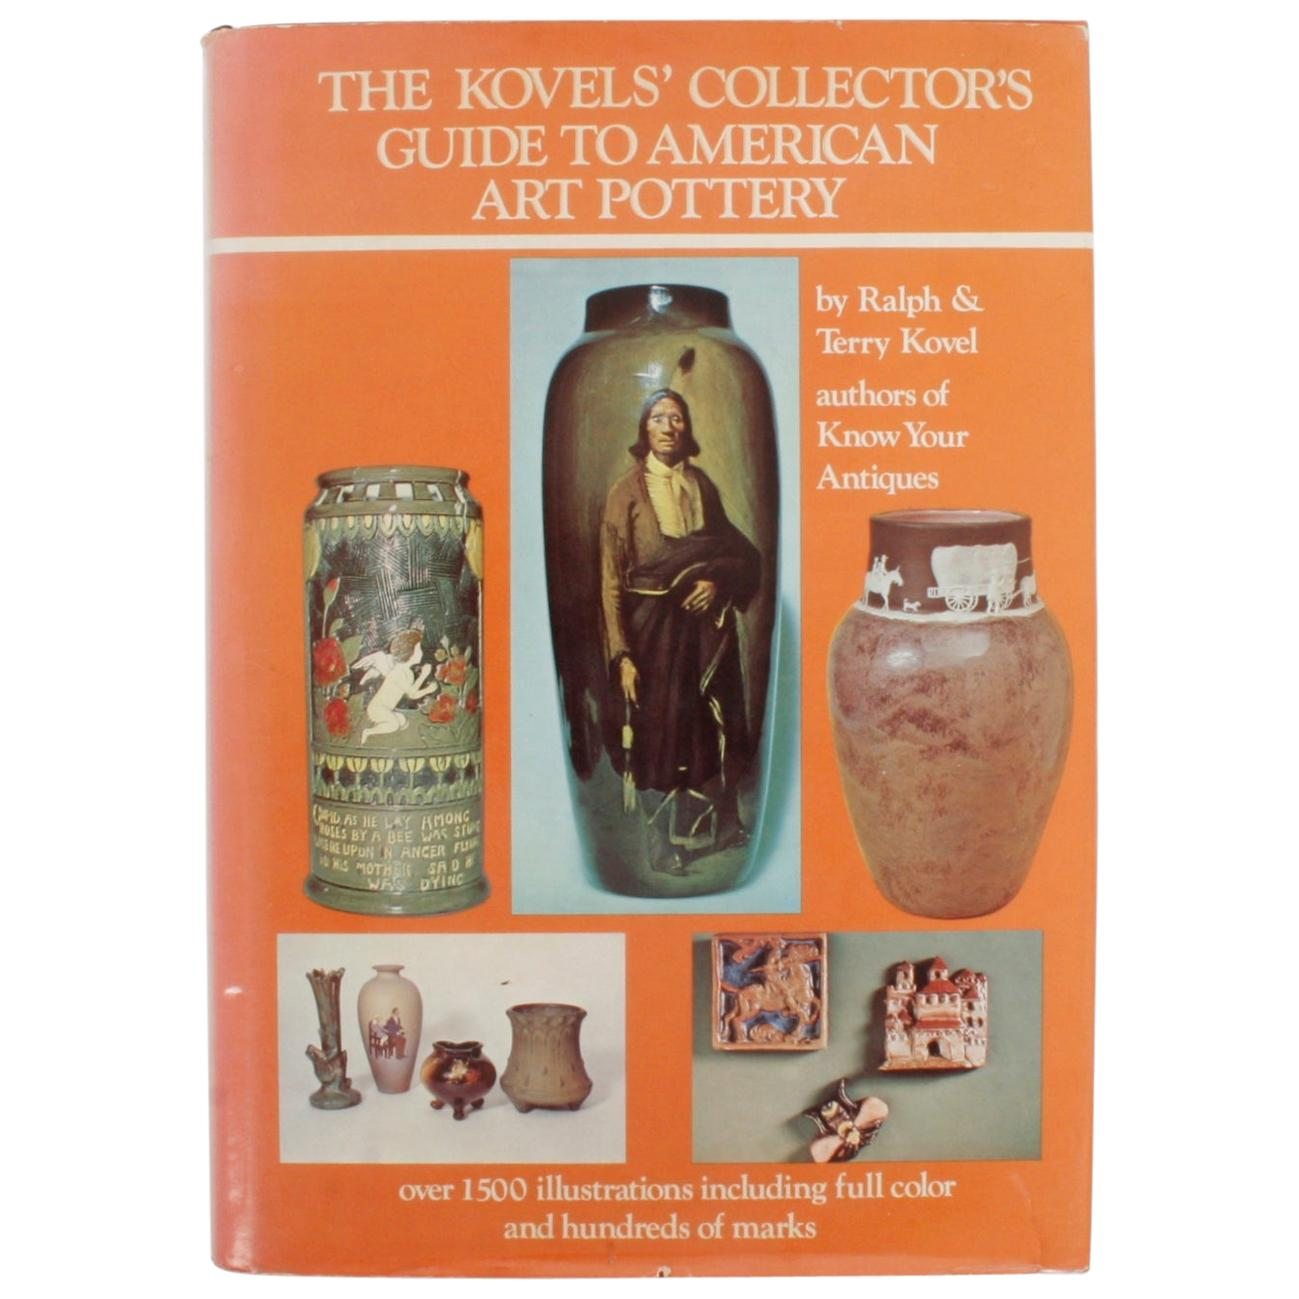 The Kovel's Collector's Guide to American Art Pottery